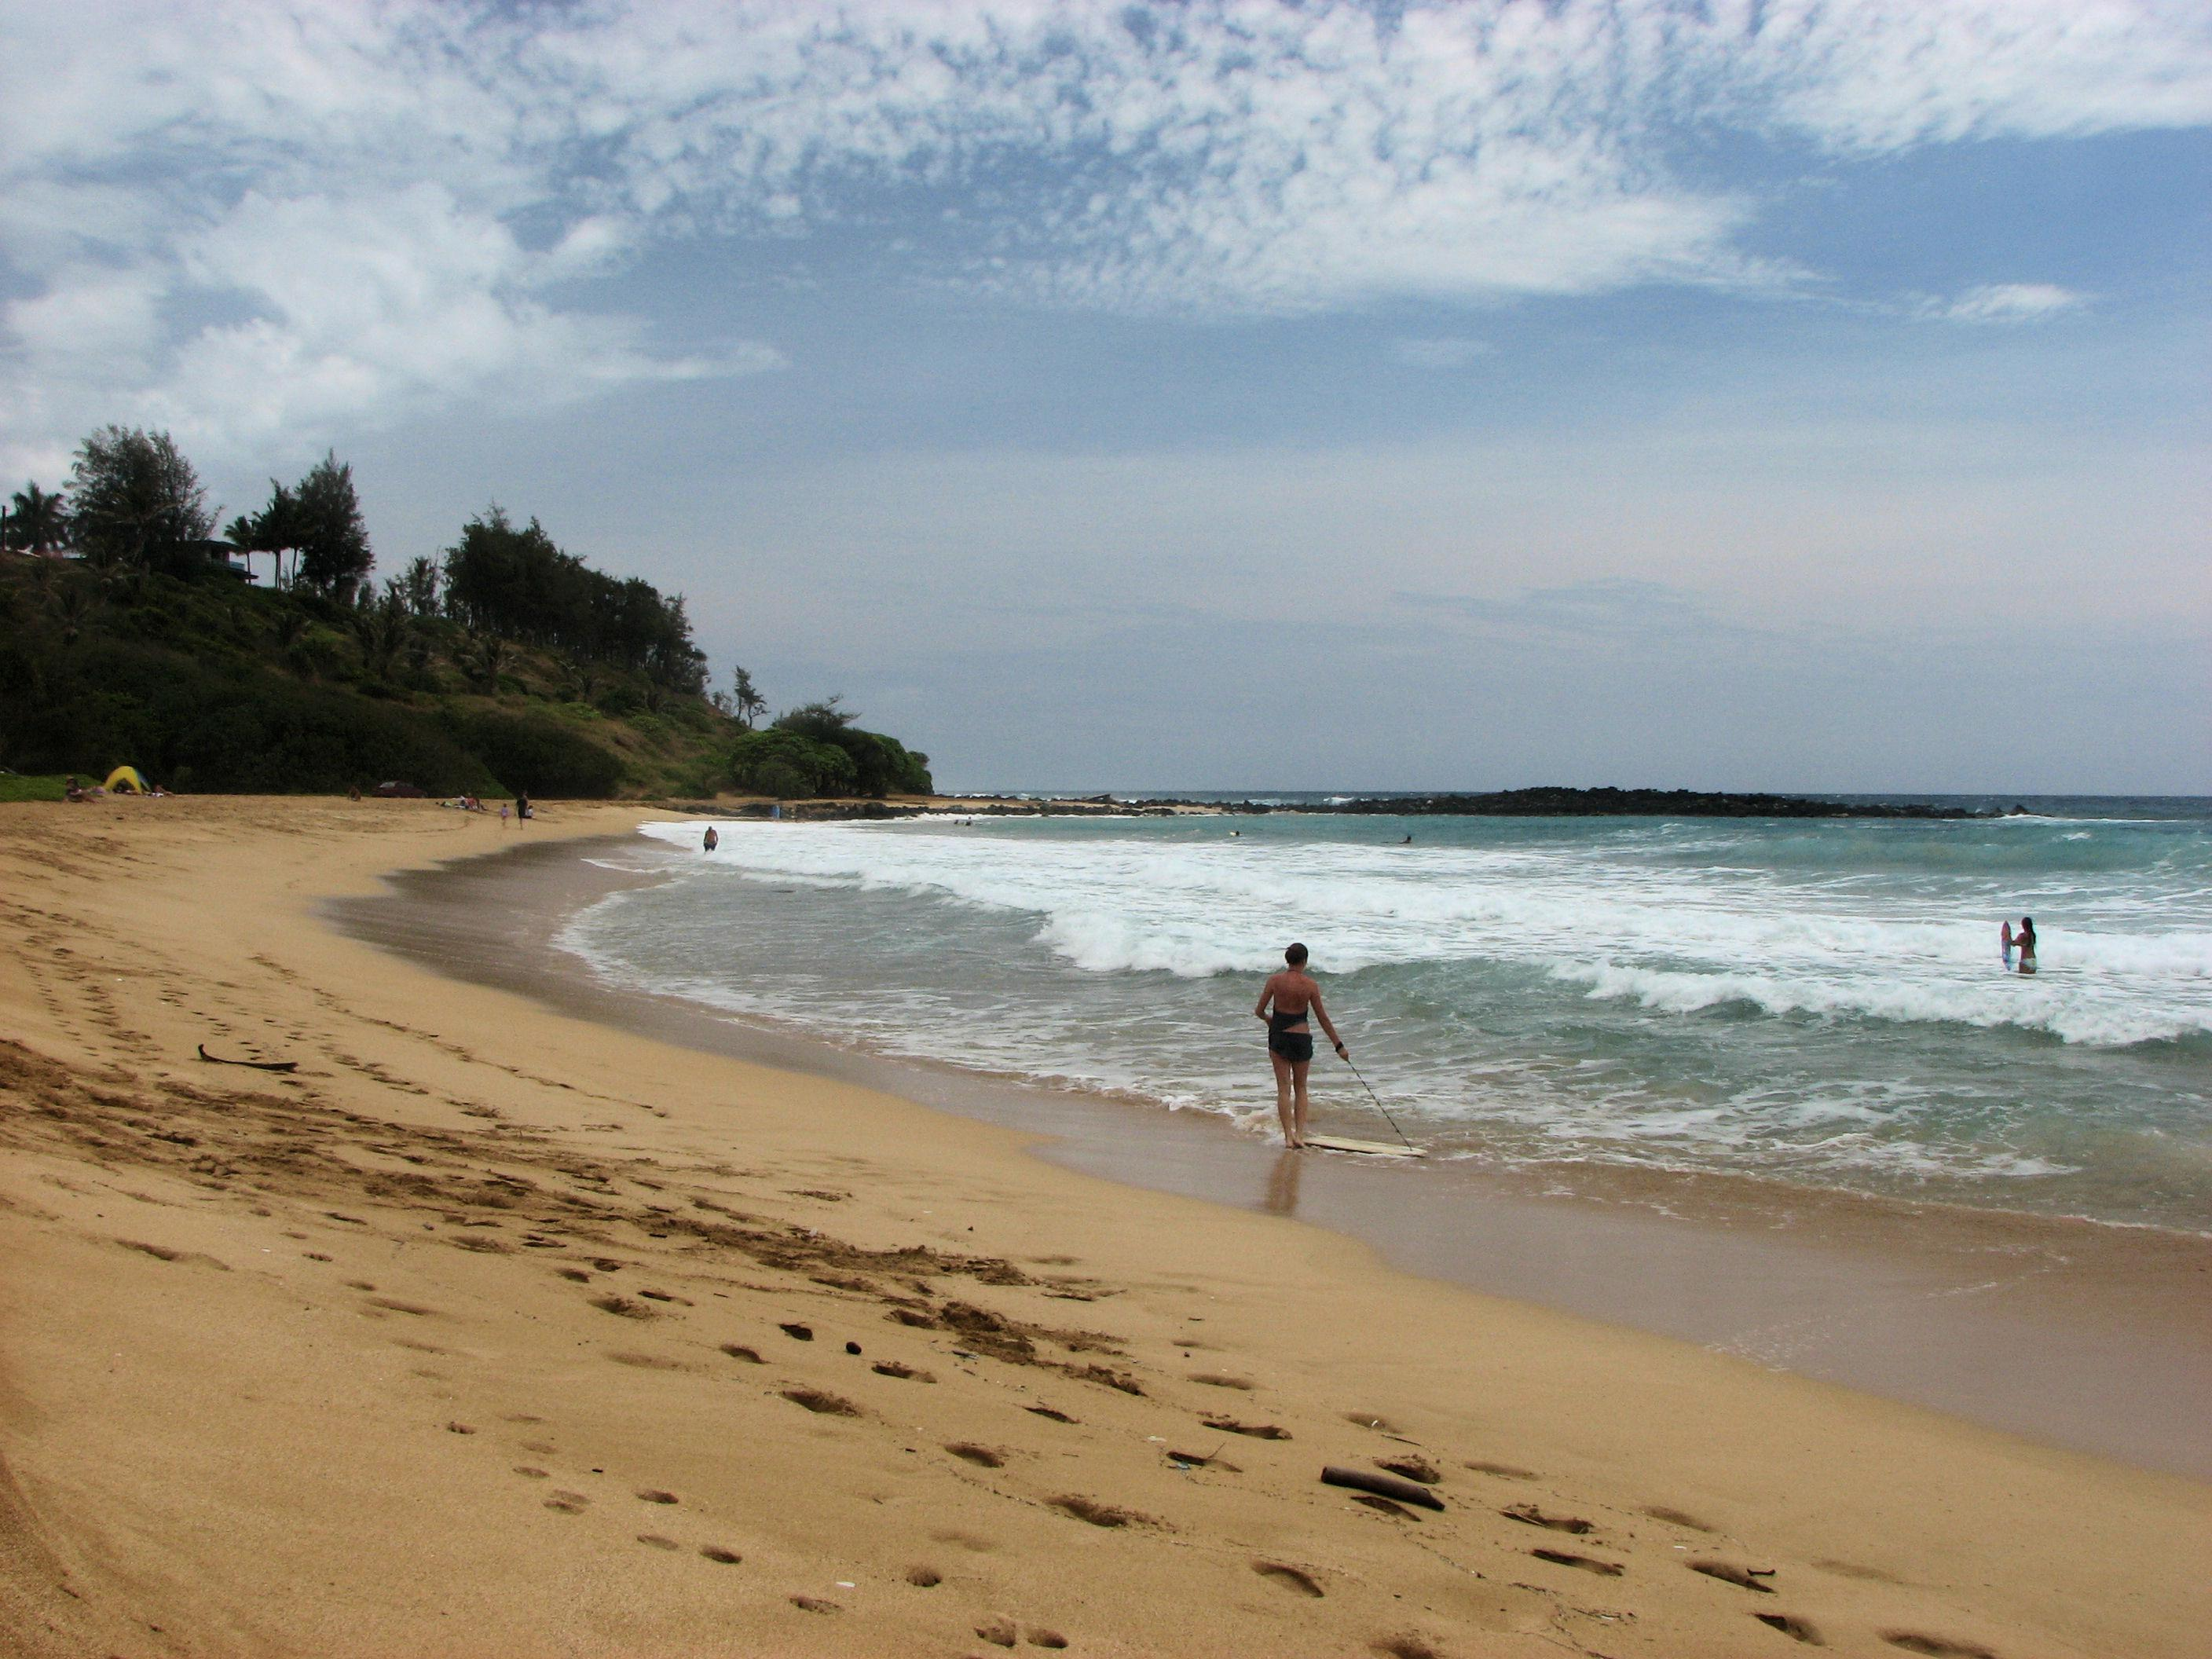 "Kauai East Shore<br />Photo <a href=""//creativecommons.org/licences/by-nc-nd/3.0/"" class=""cc-small"" target=""_blank""><img typeof=""foaf:Image"" class=""image-style-none"" src=""//i.creativecommons.org/l/by-nc-nd/3.0/80x15.png"" width=""80px"" height=""15px"" alt=""Creative Commons Licence"" /></a> <a href=""http://www.flickr.com/photos/43258421@N00/2421713137"">Harold</a>"